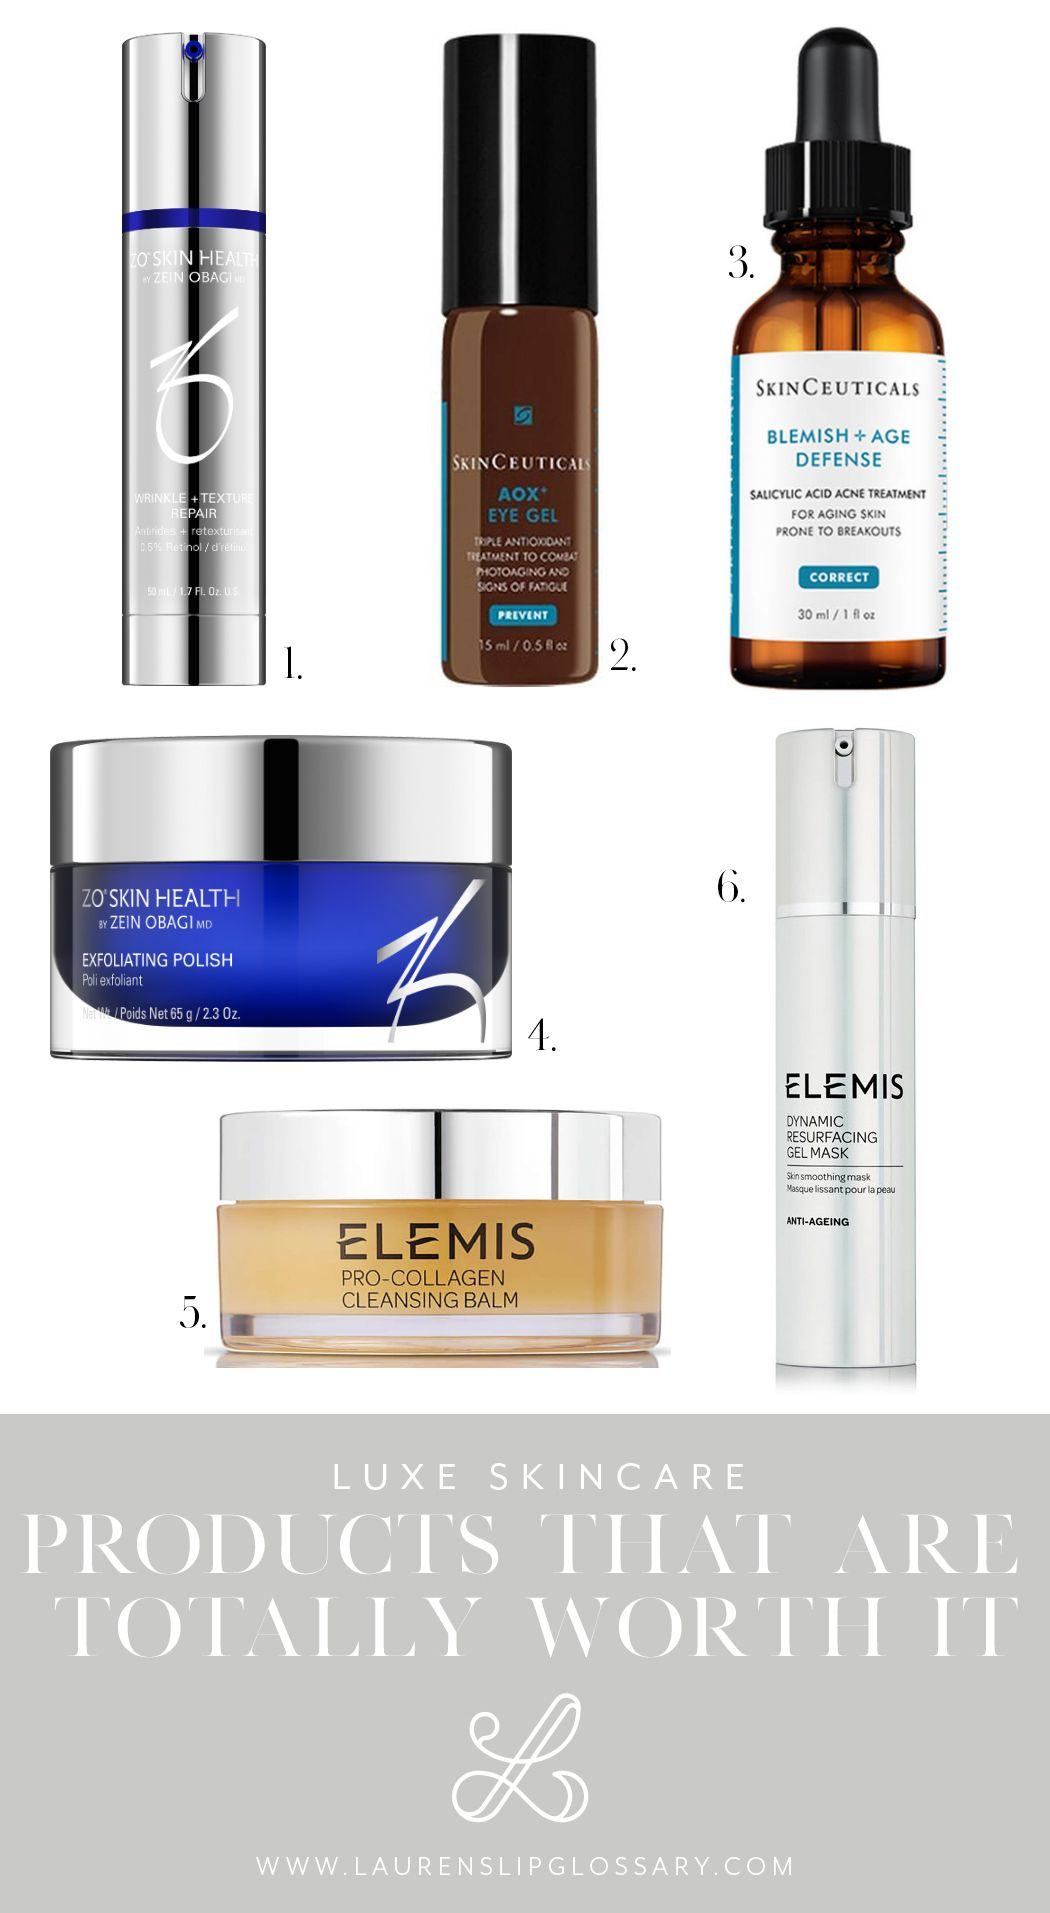 Luxe Skincare Products That Are Totally Worth It Reviews Of Elemis Skinceuticals Zo Skin Health Medical Grad Skin Care Aging Skin Care Diy Skin Treatments